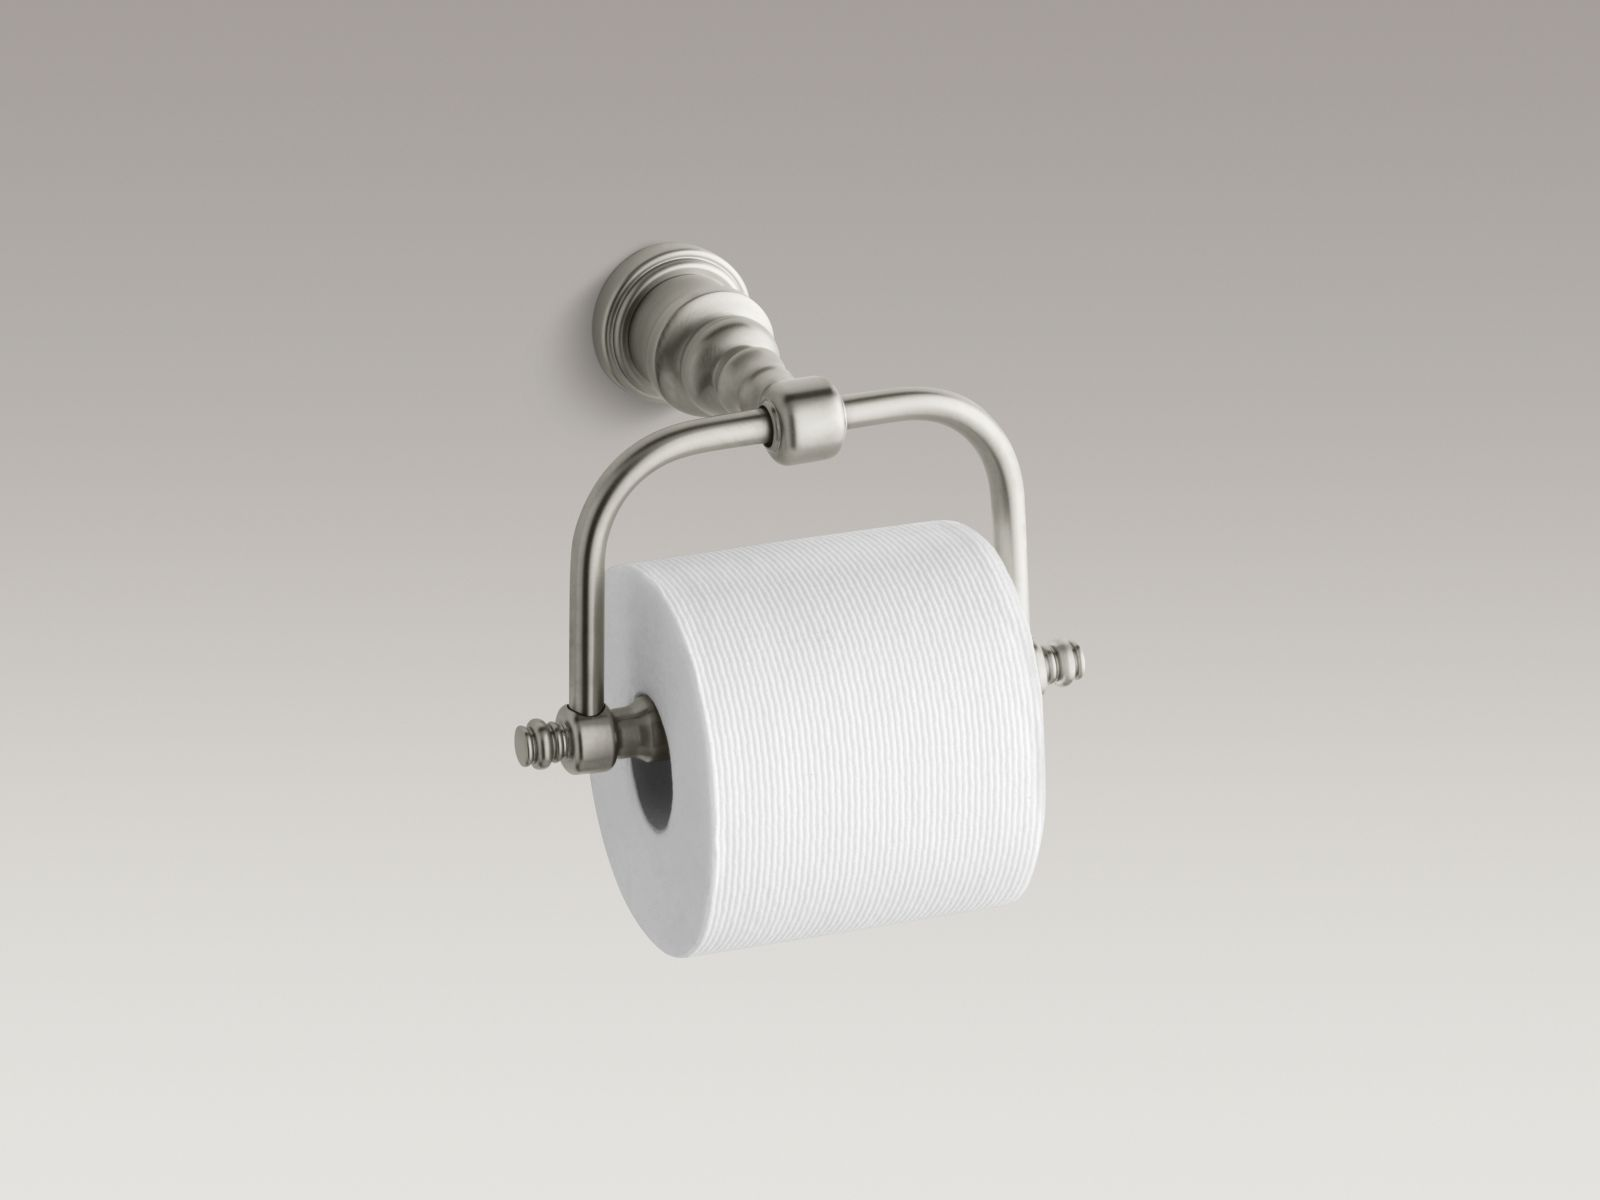 Kohler K-6828-BN IV Georges Brass Horizontal Toilet Tissue Holder Vibrant Brushed Nickel